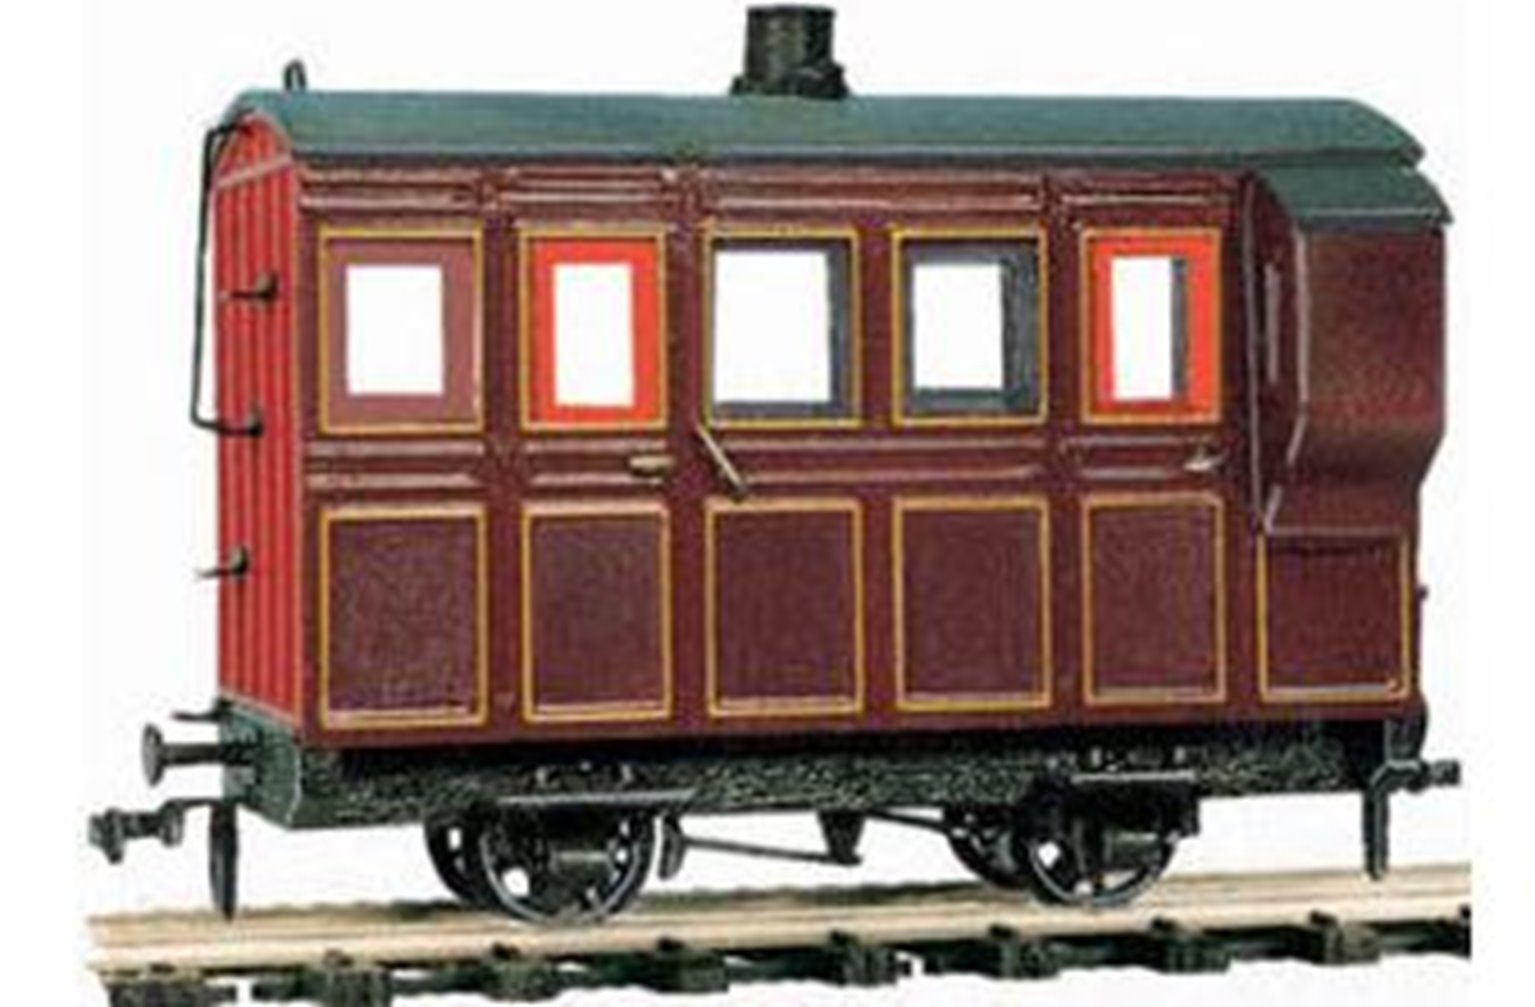 4 Wheel Coach/Brake, maroon livery